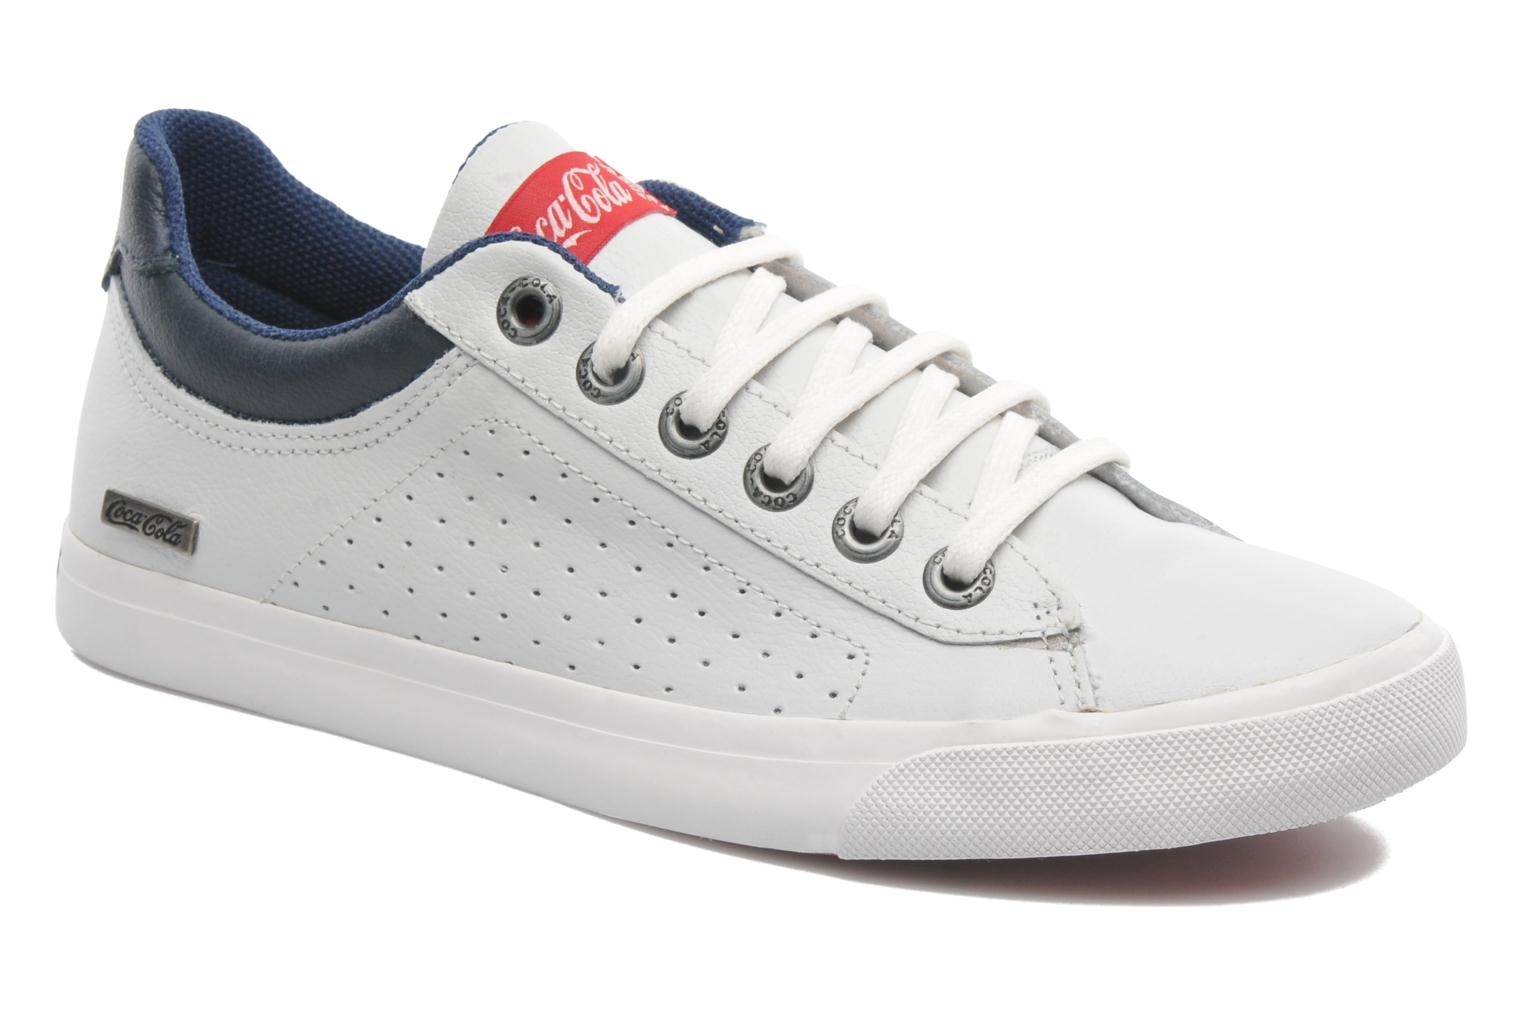 Sneakers Virgo by Coca-cola shoes